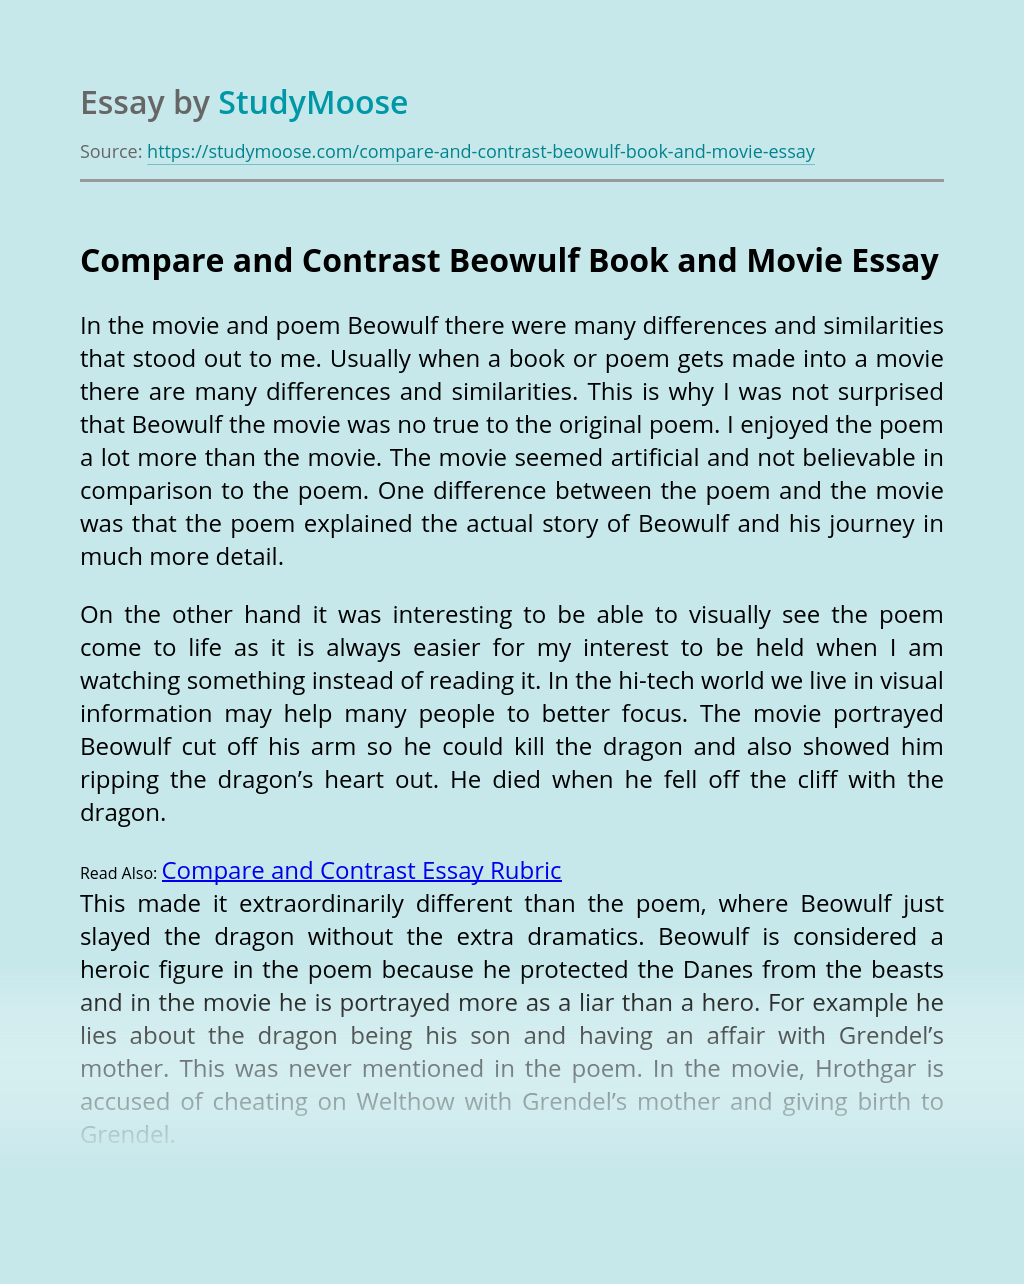 Compare and Contrast Beowulf Book and Movie